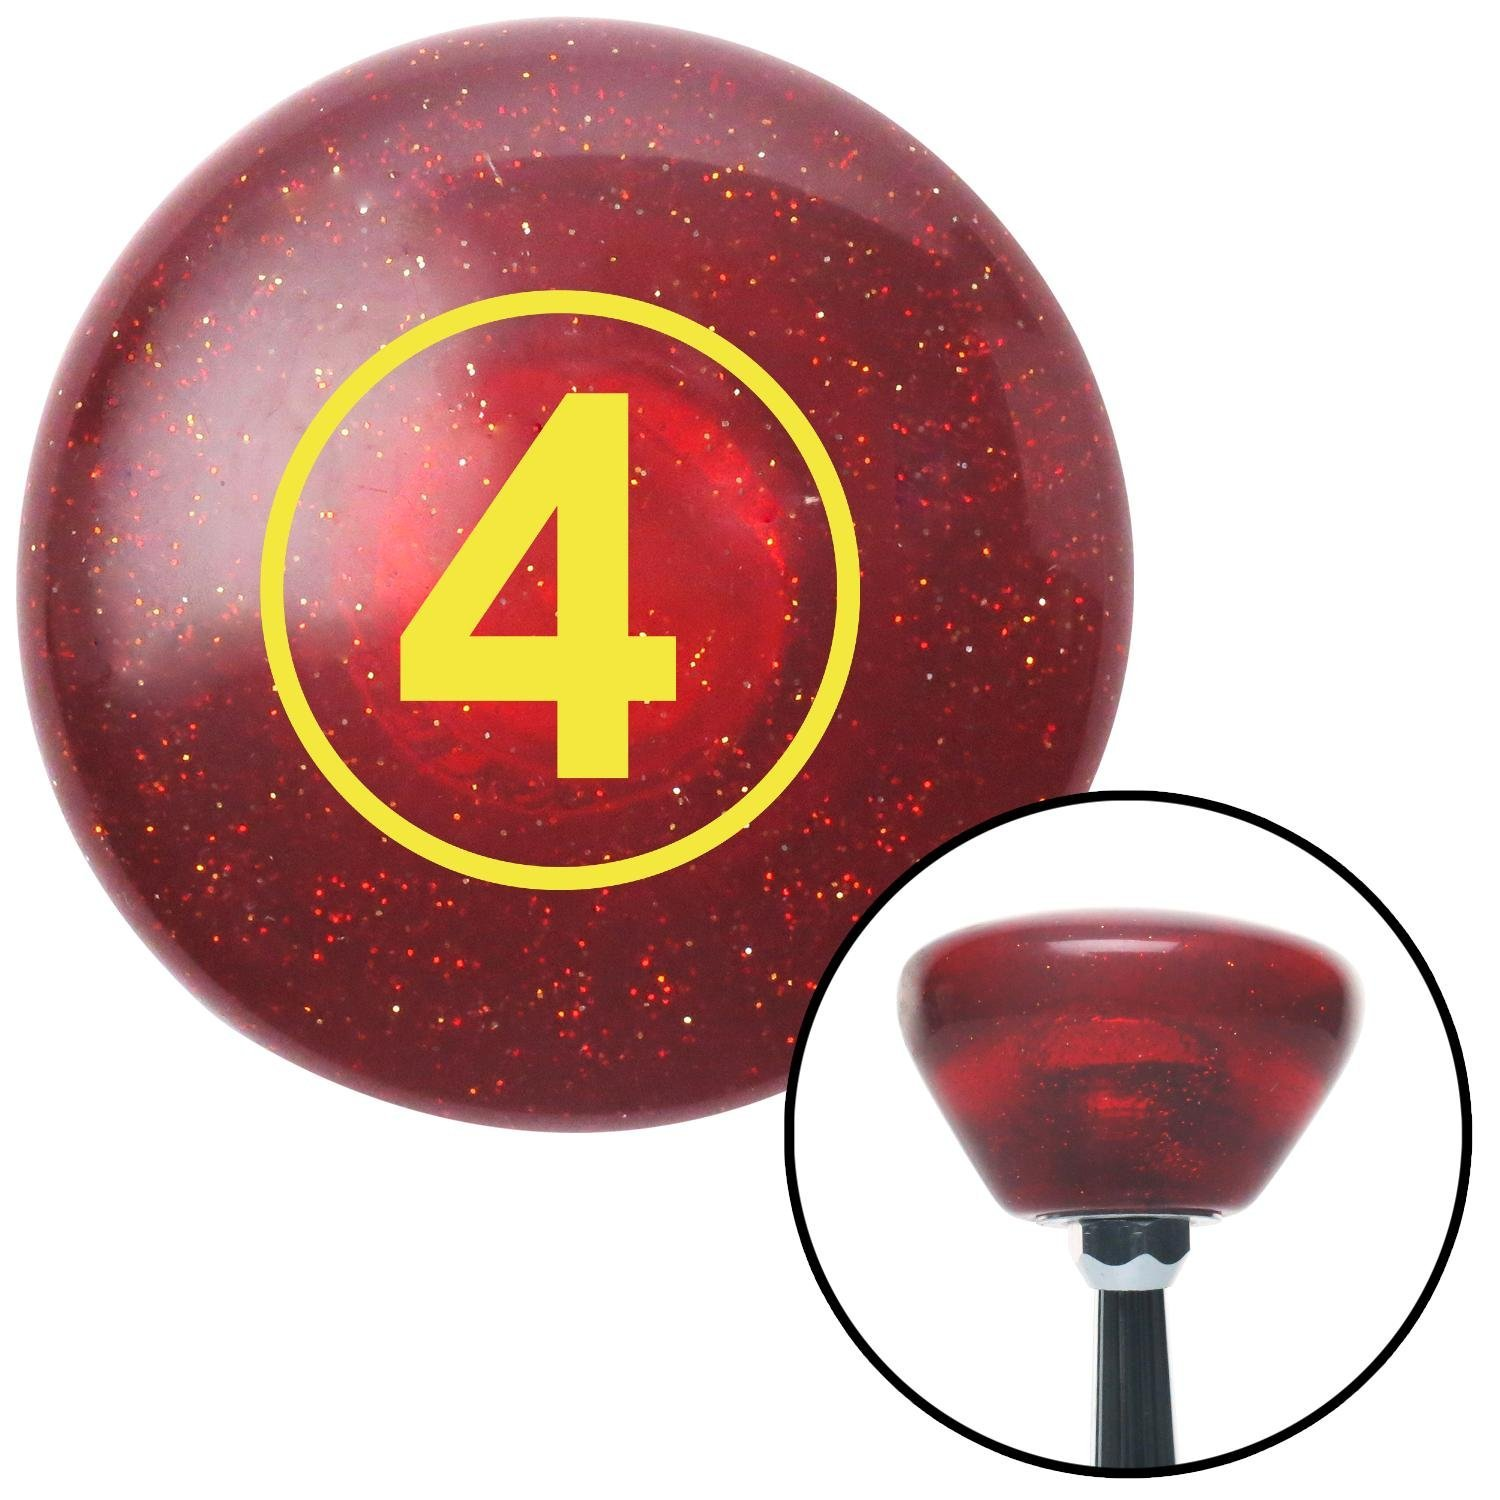 American Shifter 193540 Red Retro Metal Flake Shift Knob with M16 x 1.5 Insert Yellow Ball #4